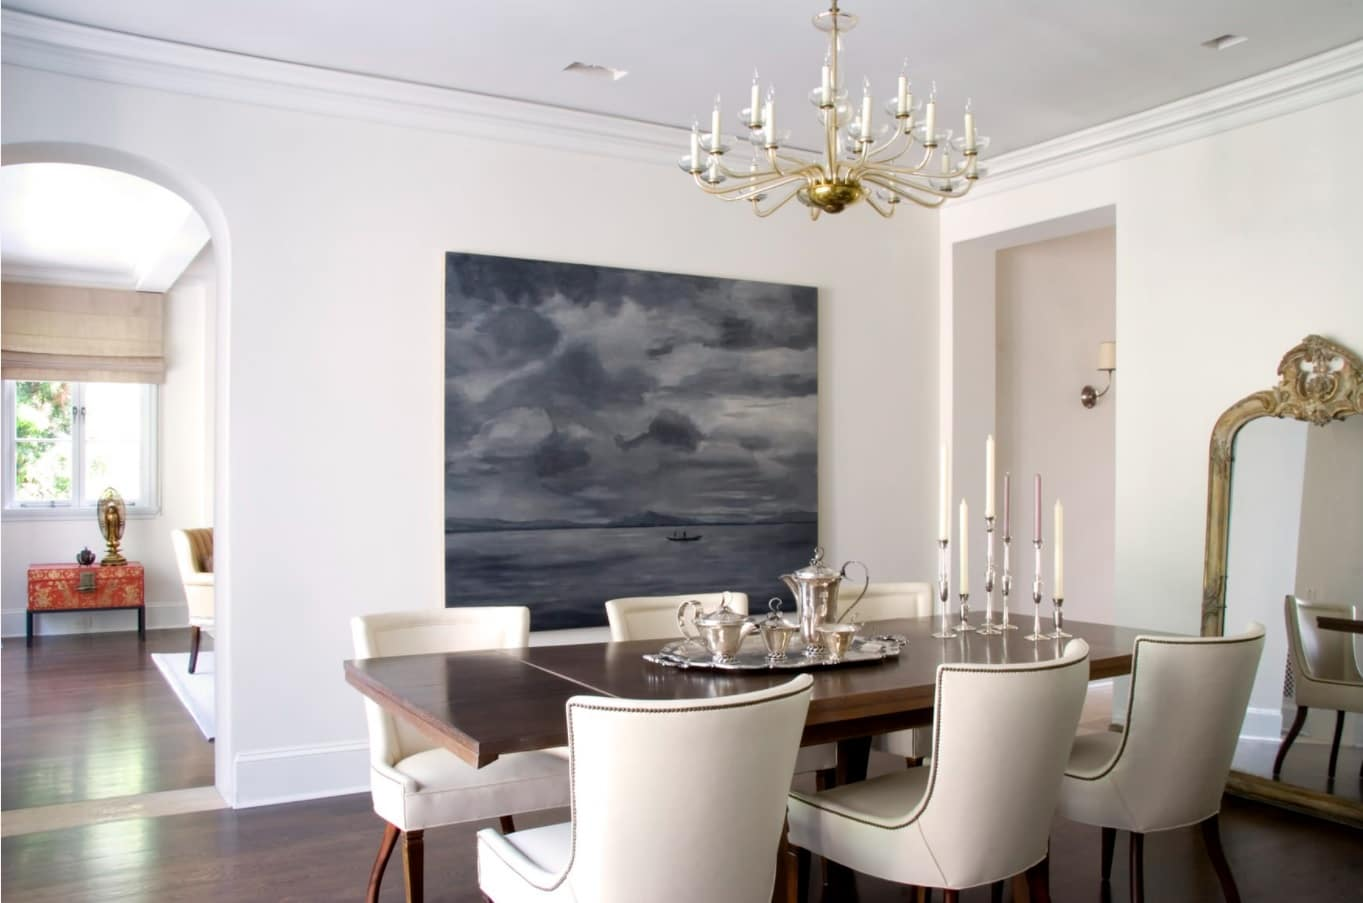 Totally light creamy colored dining room with decoartive painting of cloudy abstractions